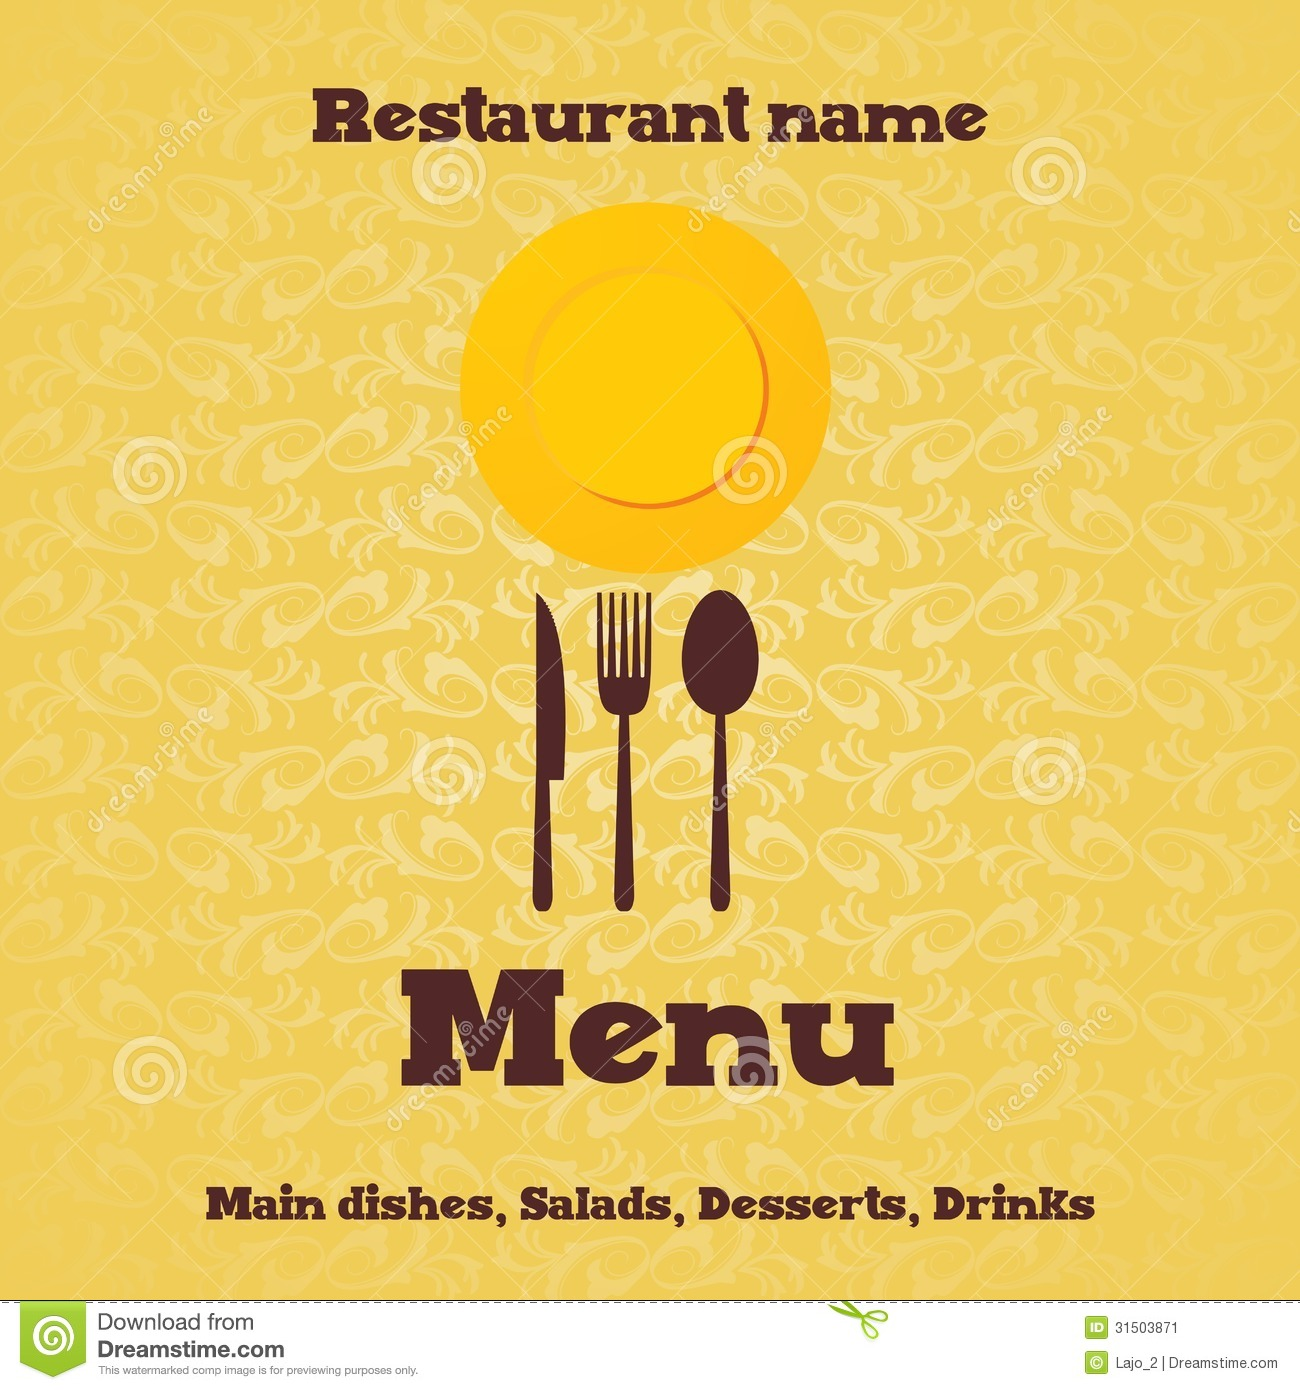 Restaurant menu design stock vector image of letter